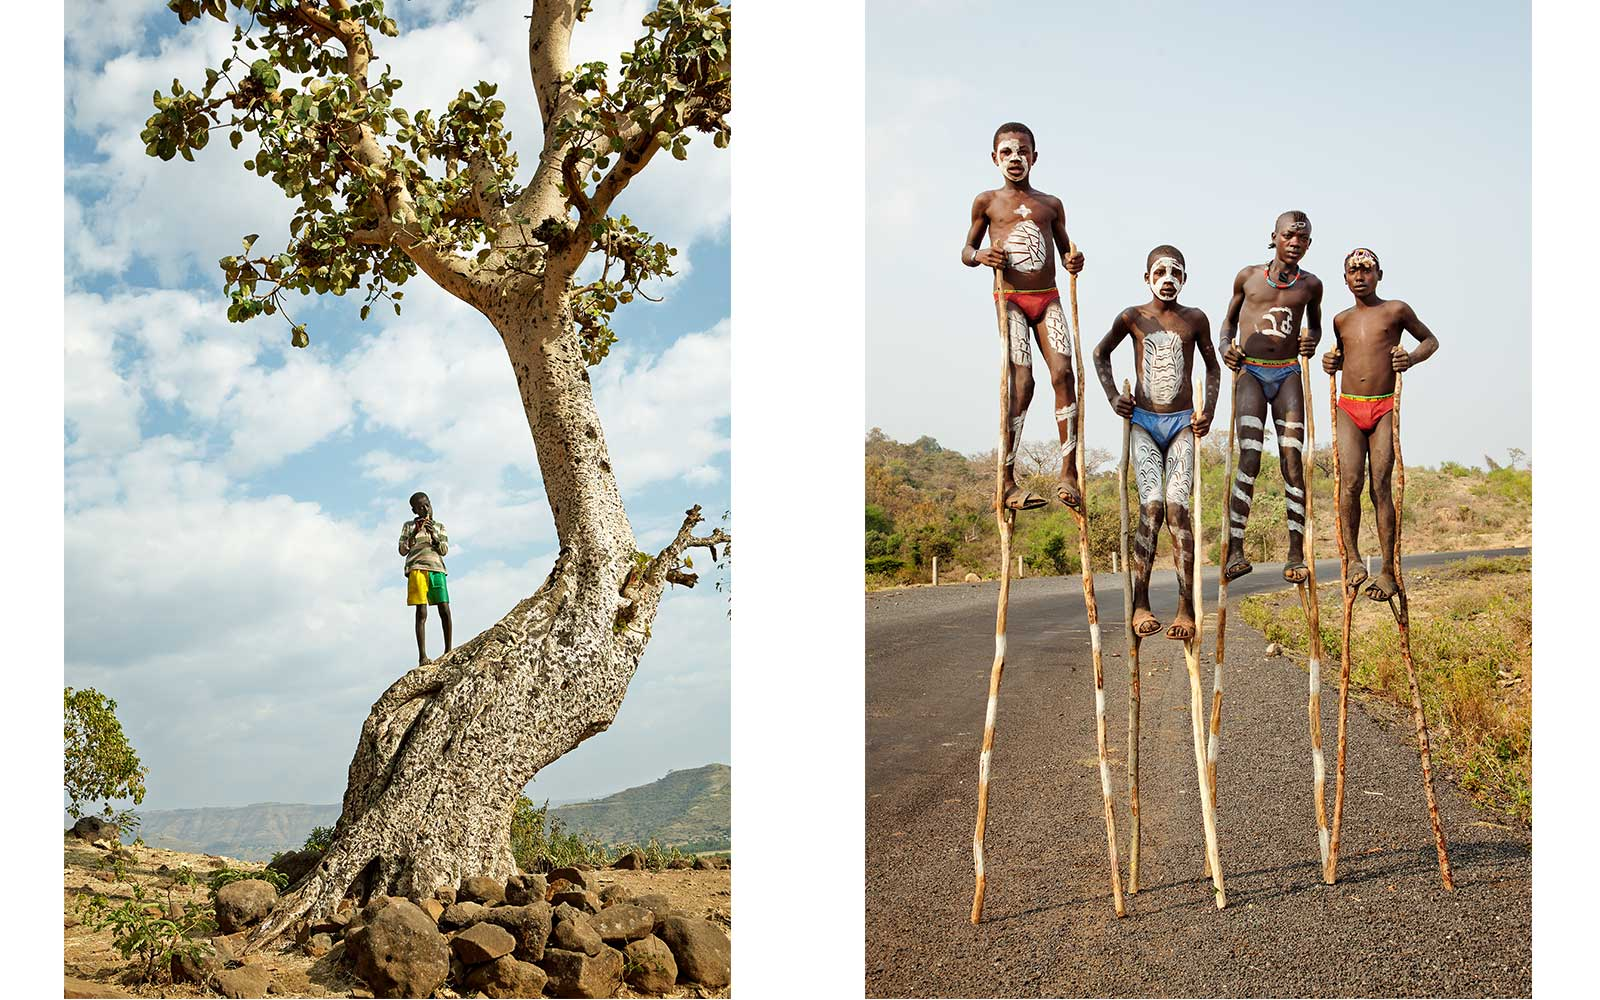 Left: Flute Player, Ethiopia 2013. Right: Entering the Omo Valley, Ethiopia 2013. From Circadian Landscape by Jessica Antola